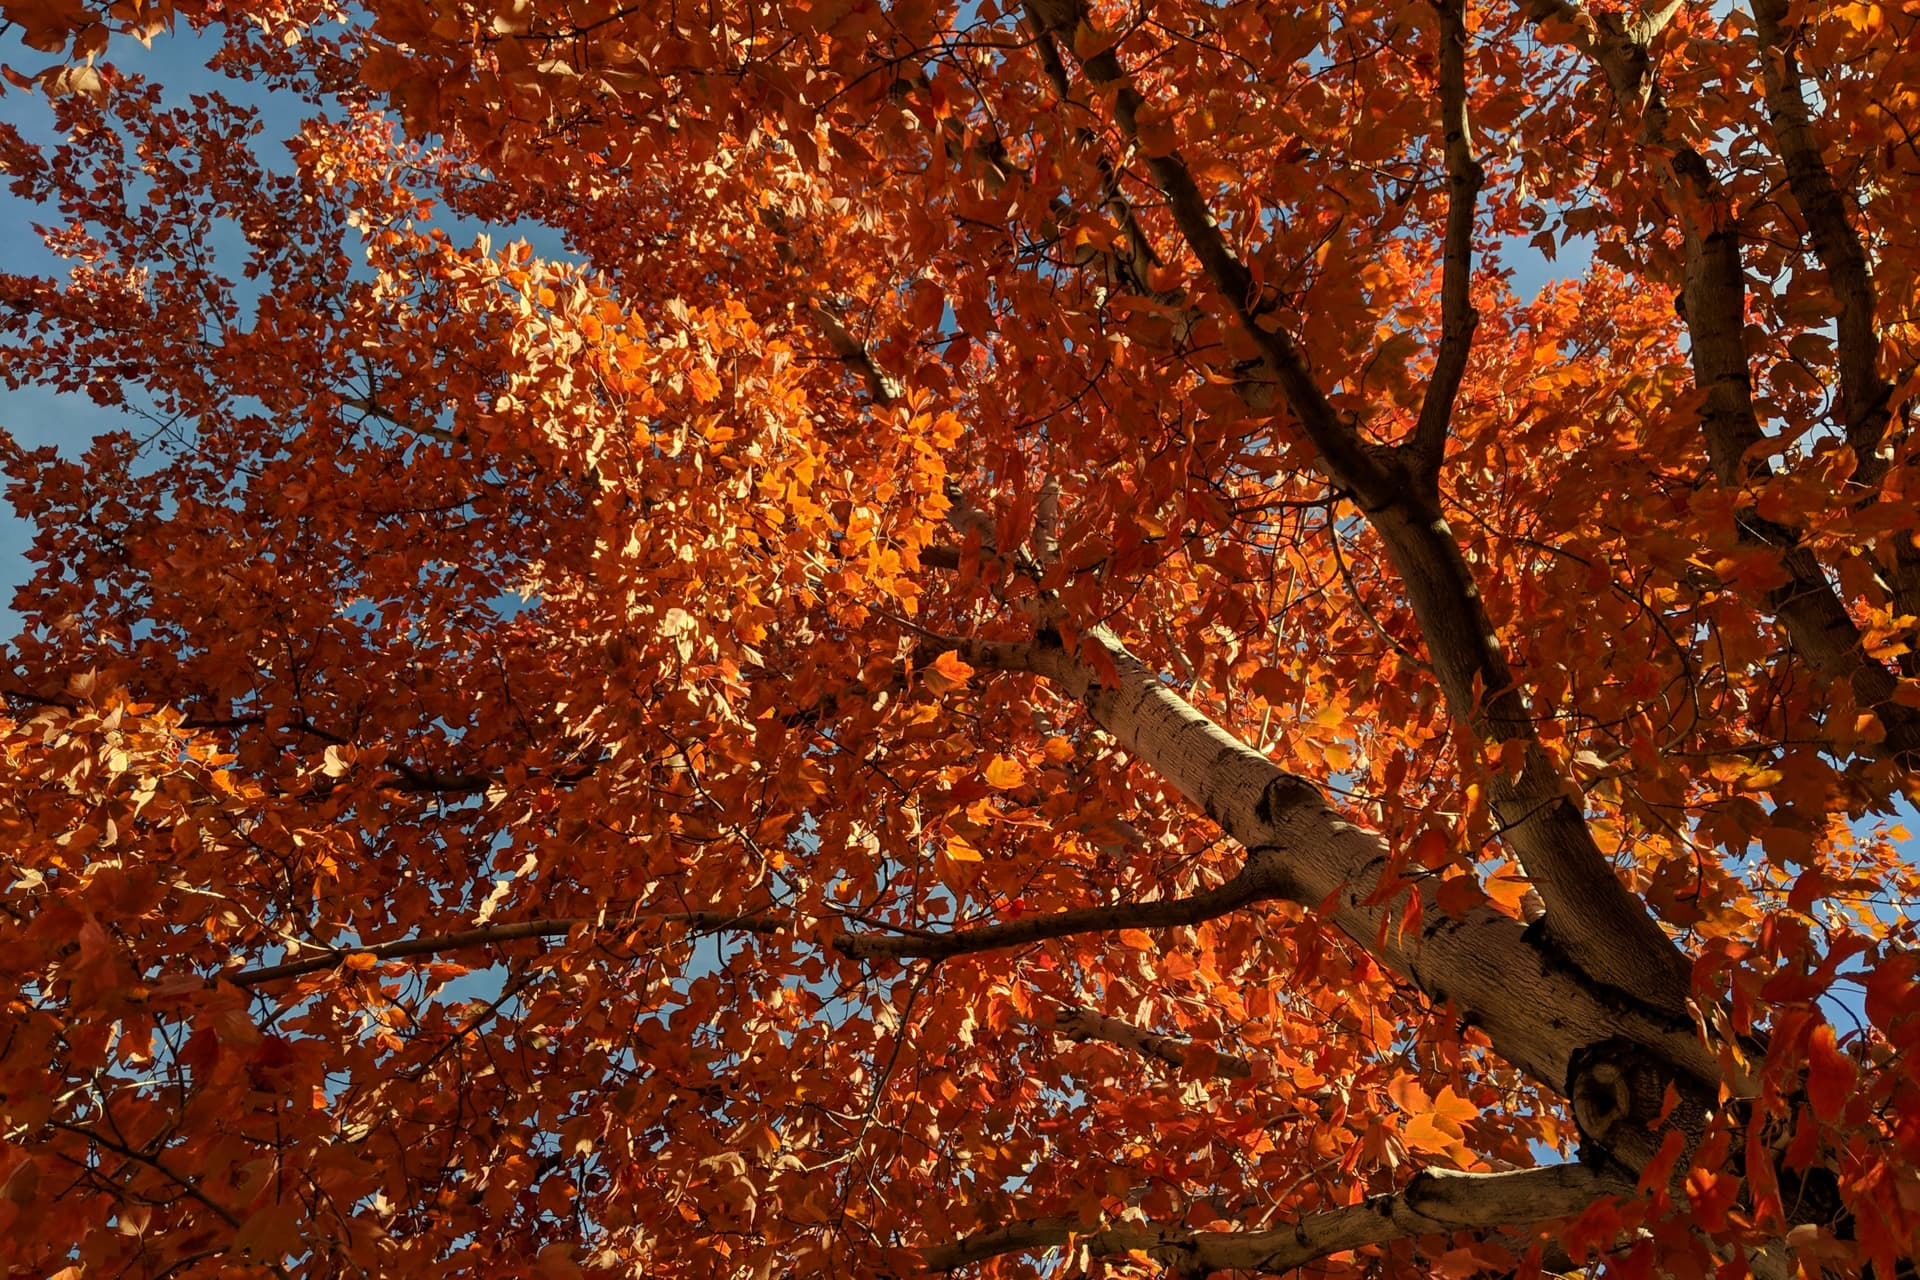 A red-leafed fall tree, silhouetted against a clear blue sky.